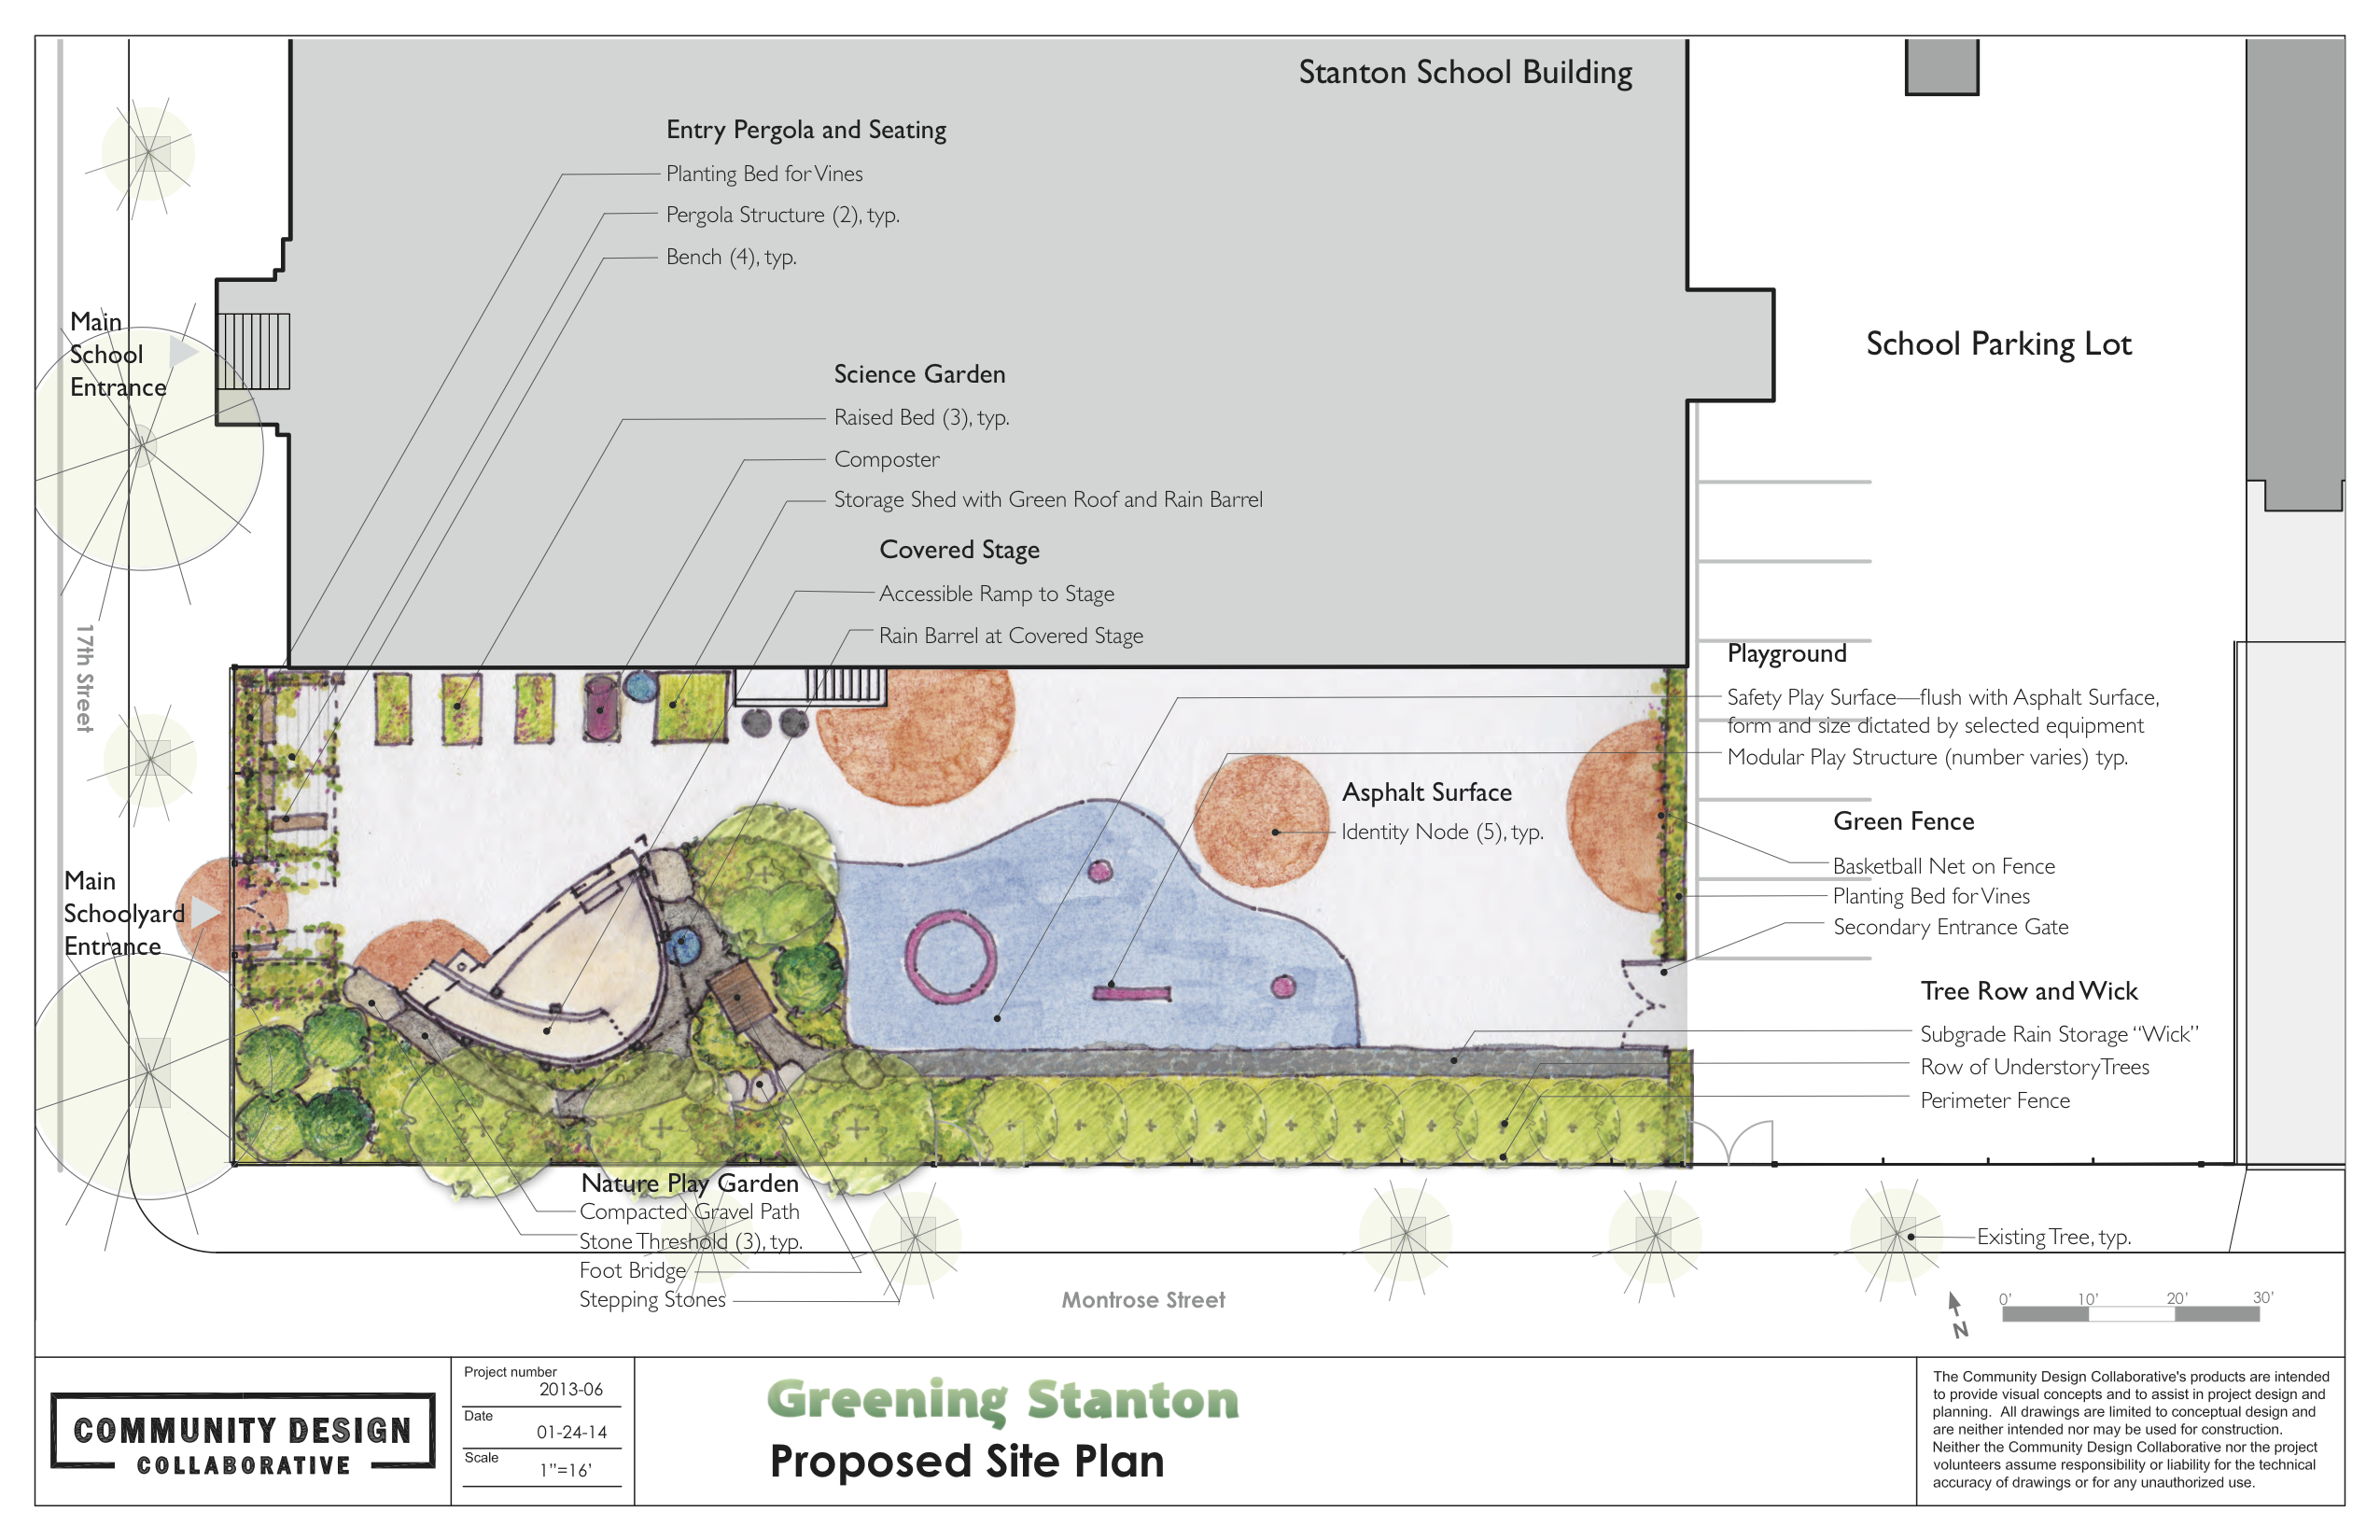 Greening Stanton concept plan, Courtesy of the Community Design Collaborative